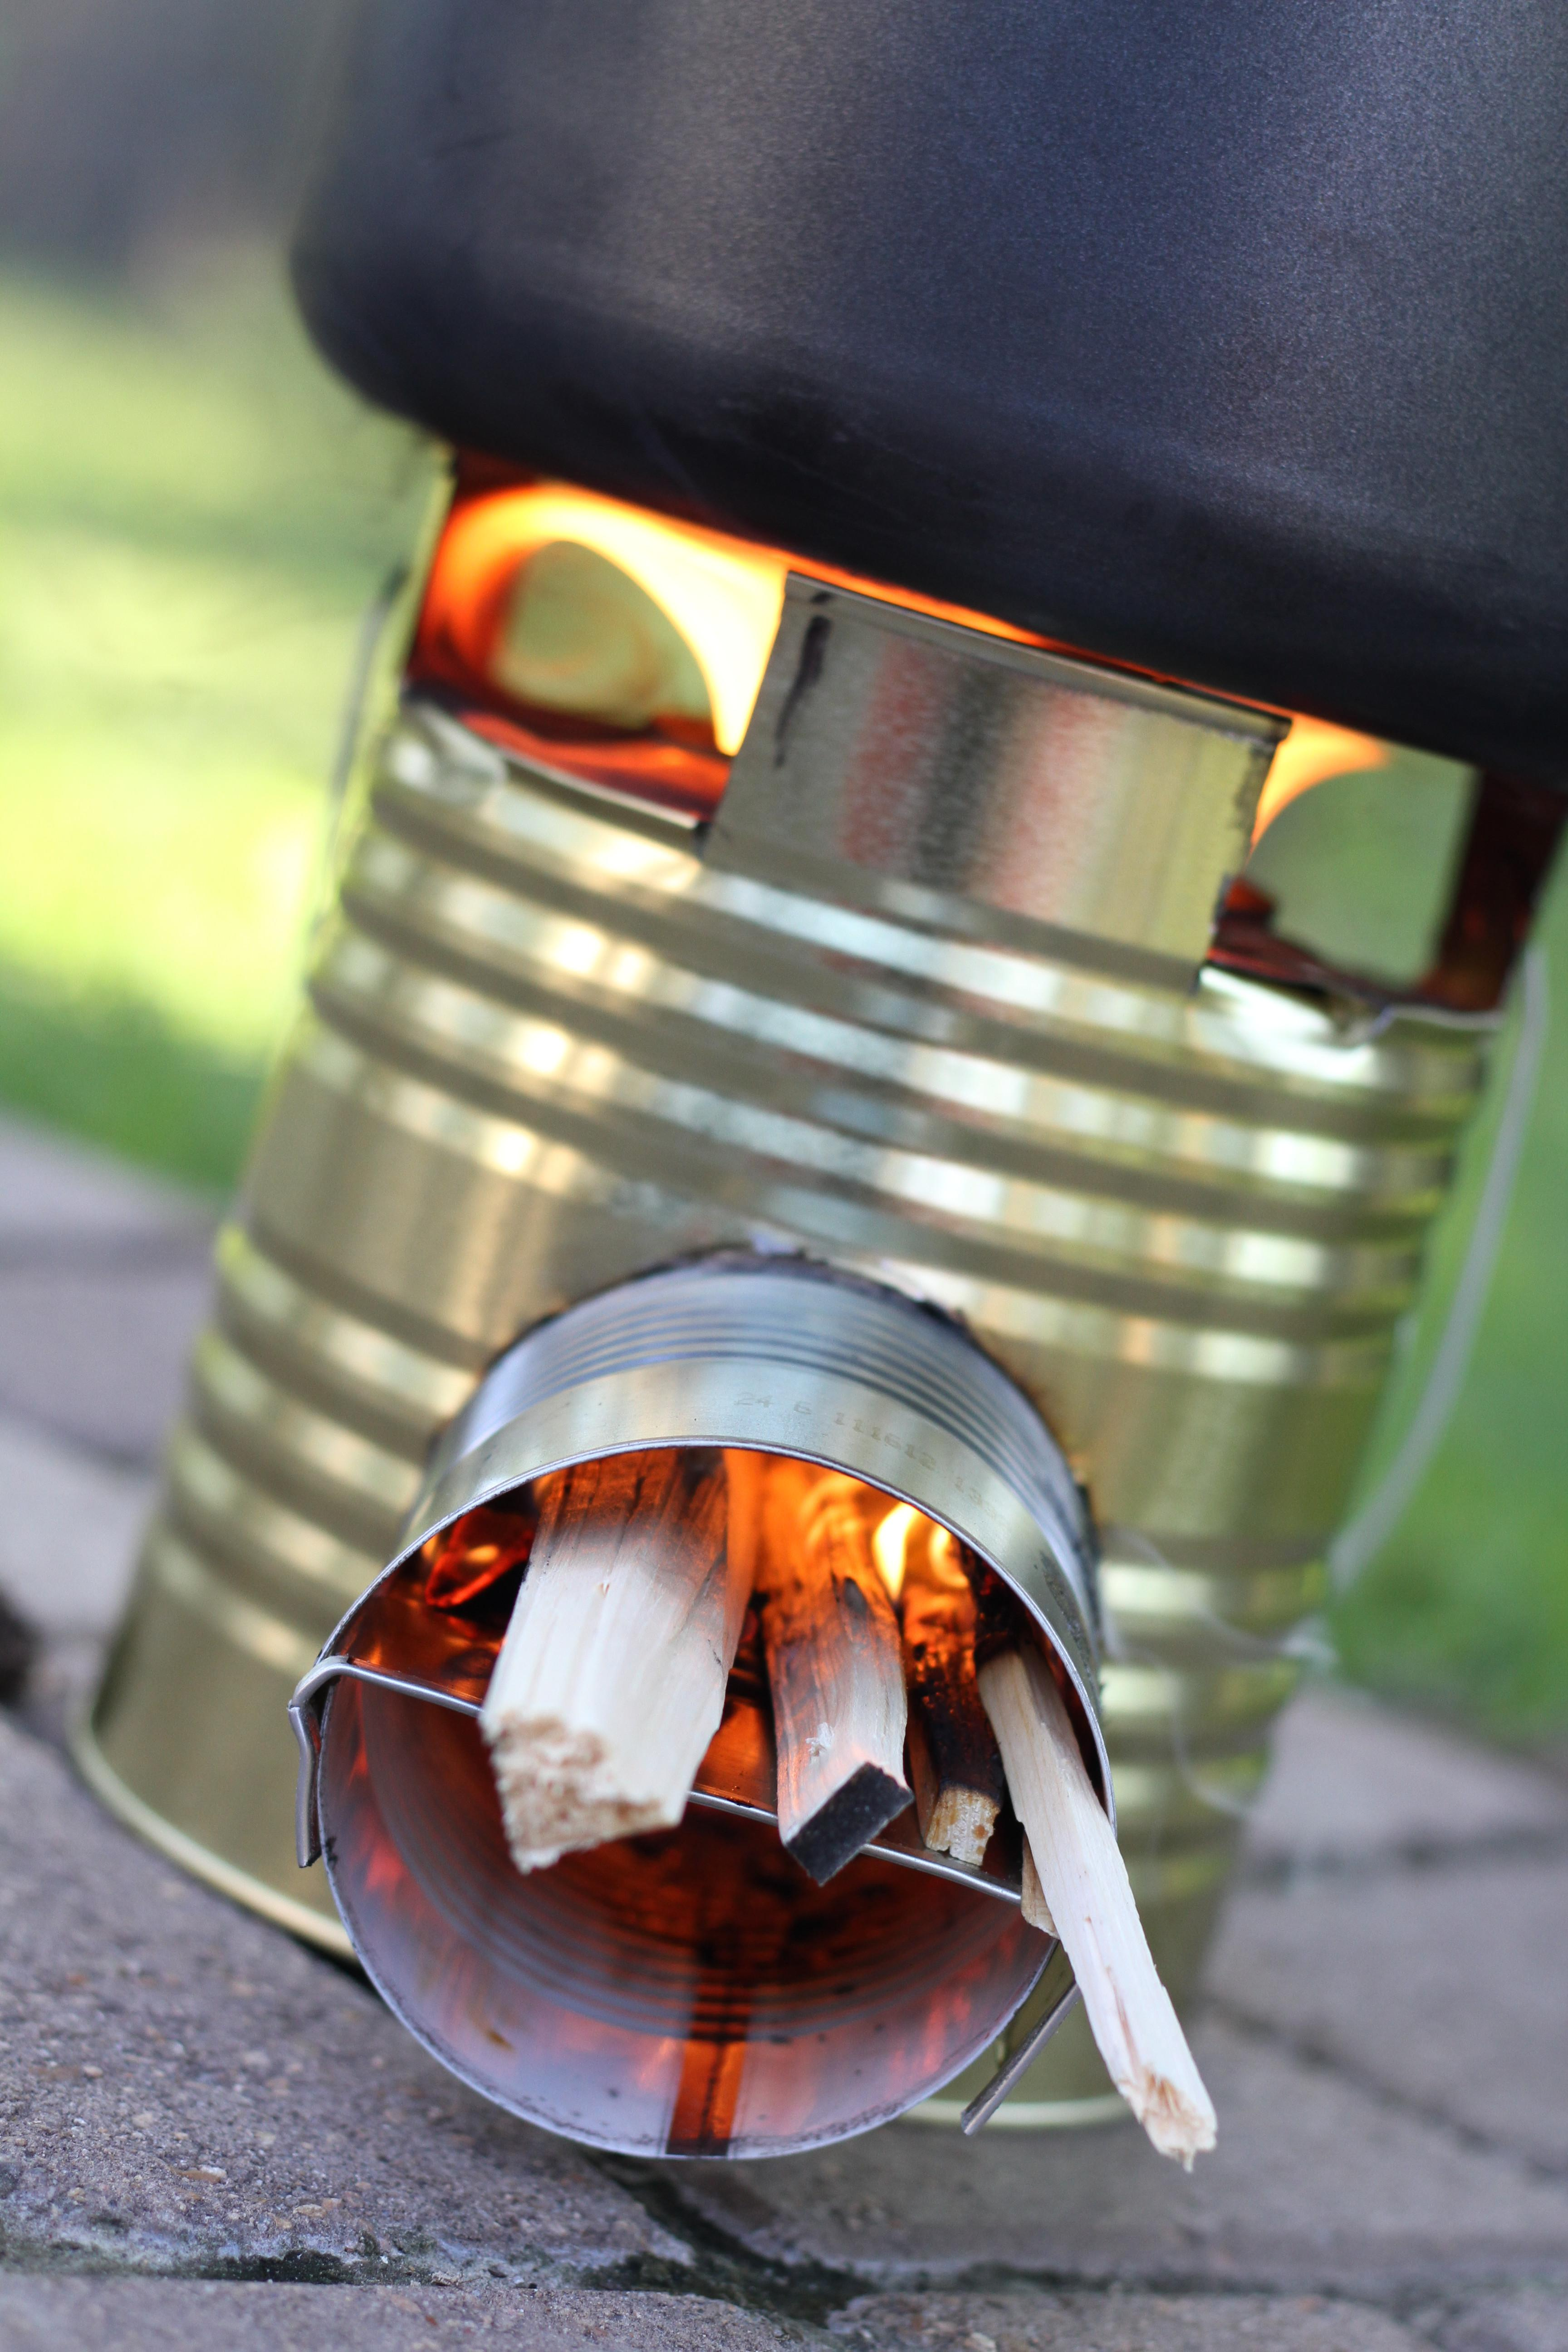 Build Rocket Stove Impress Boys Survival